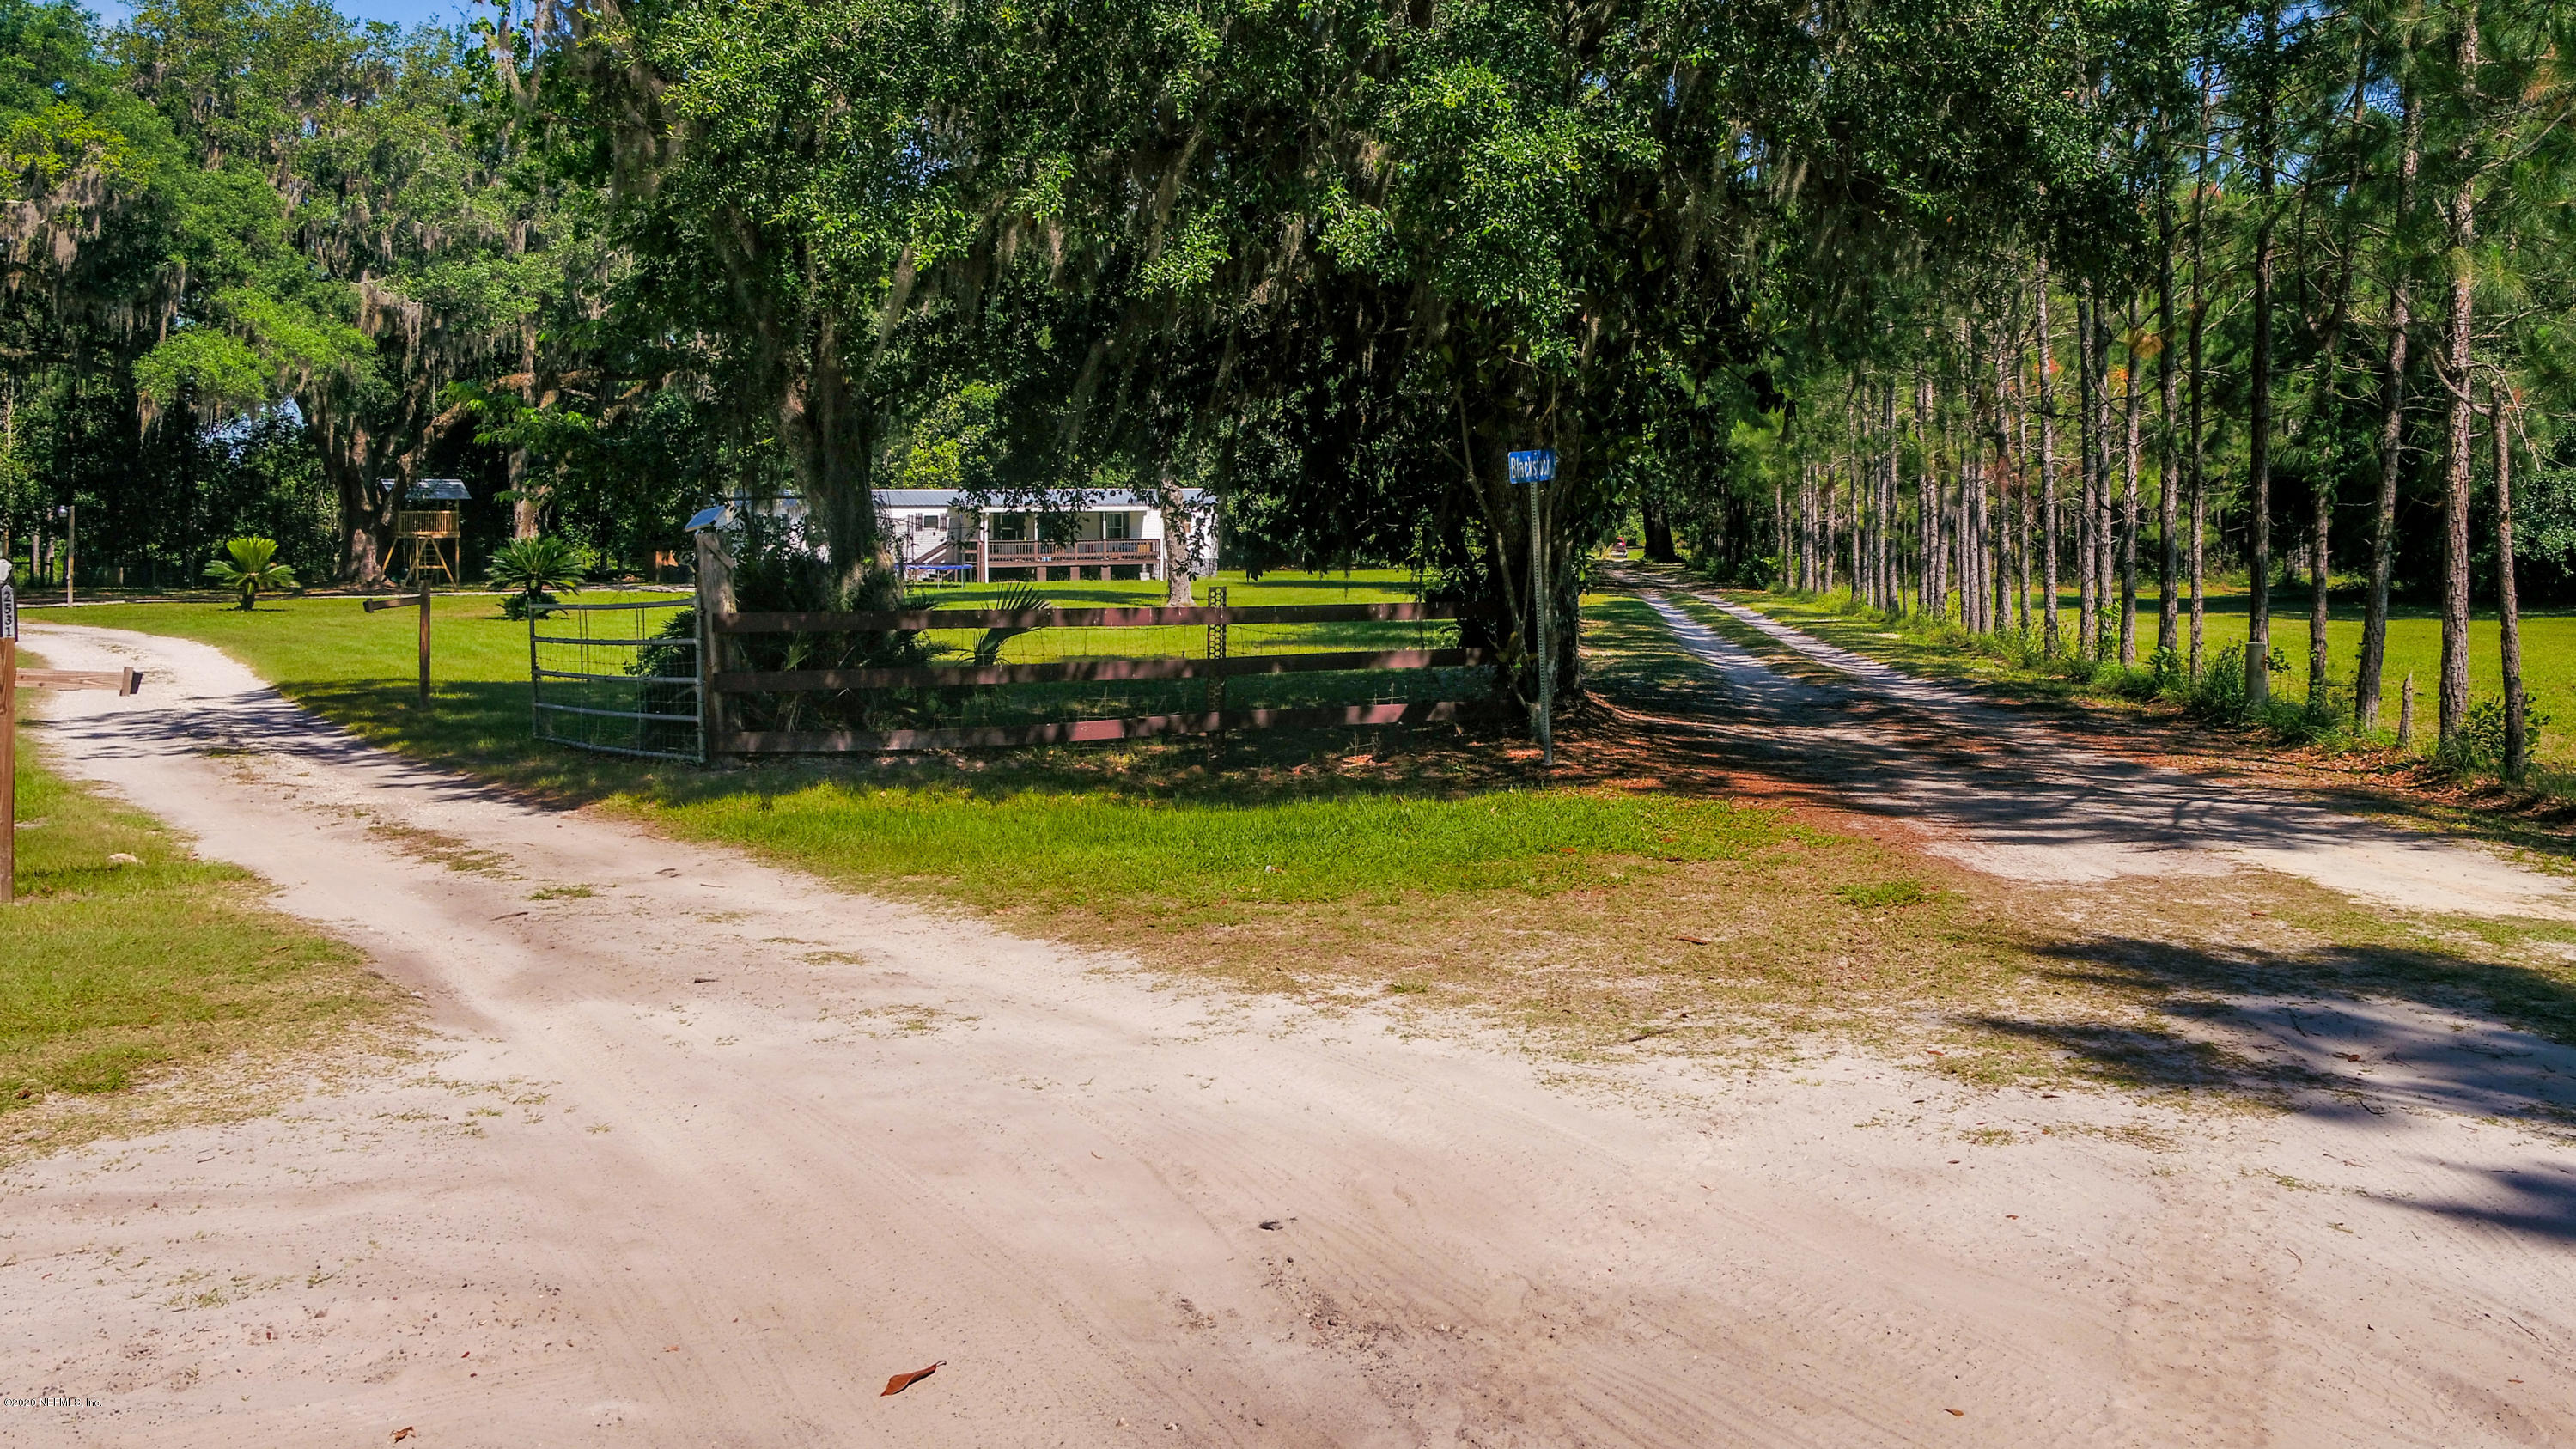 0 SIKES, HILLIARD, FLORIDA 32046, ,Vacant land,For sale,SIKES,1053112